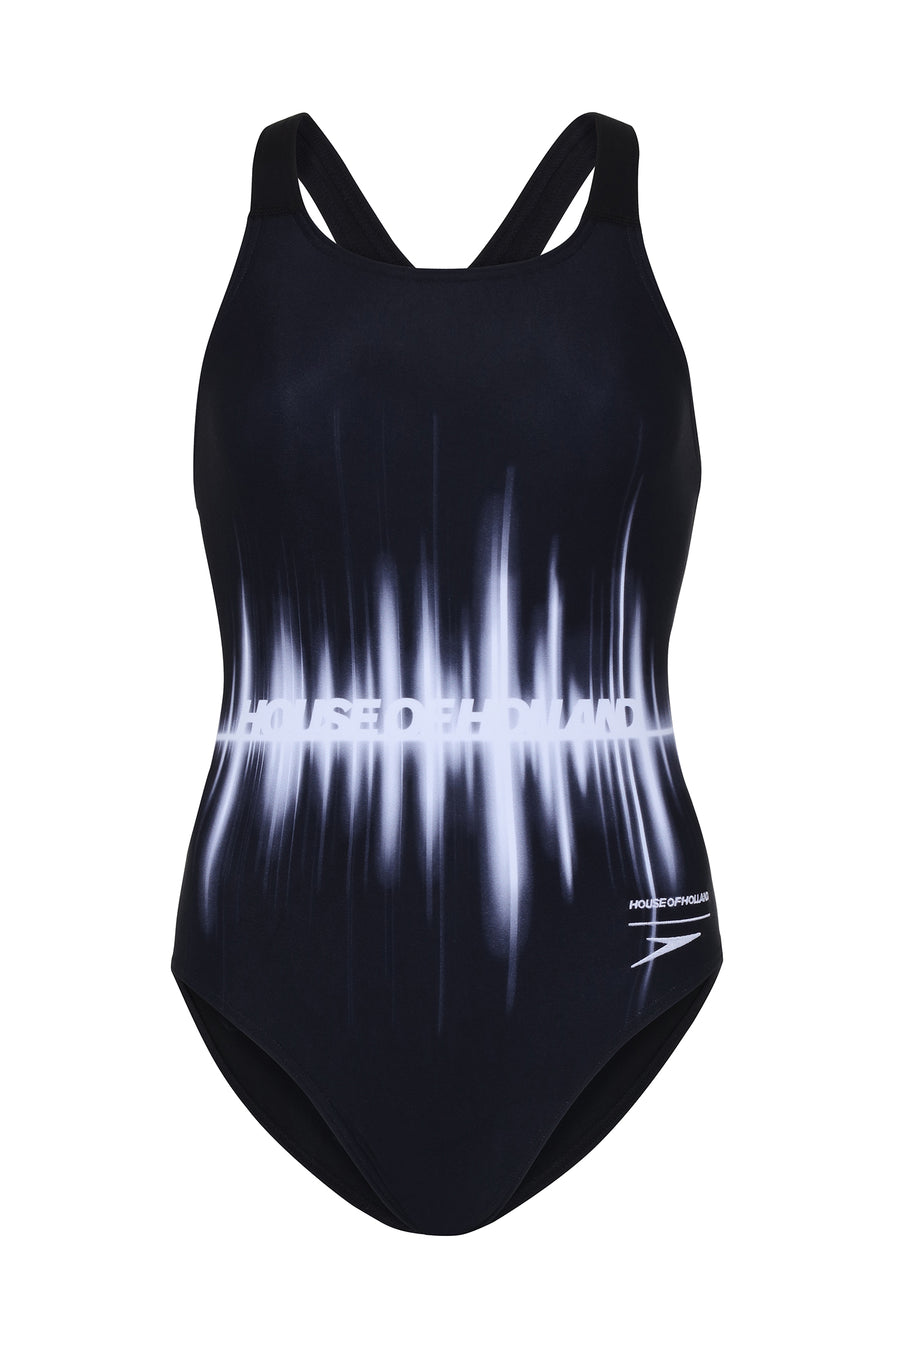 HOH X Speedo Soundwave Swimsuit